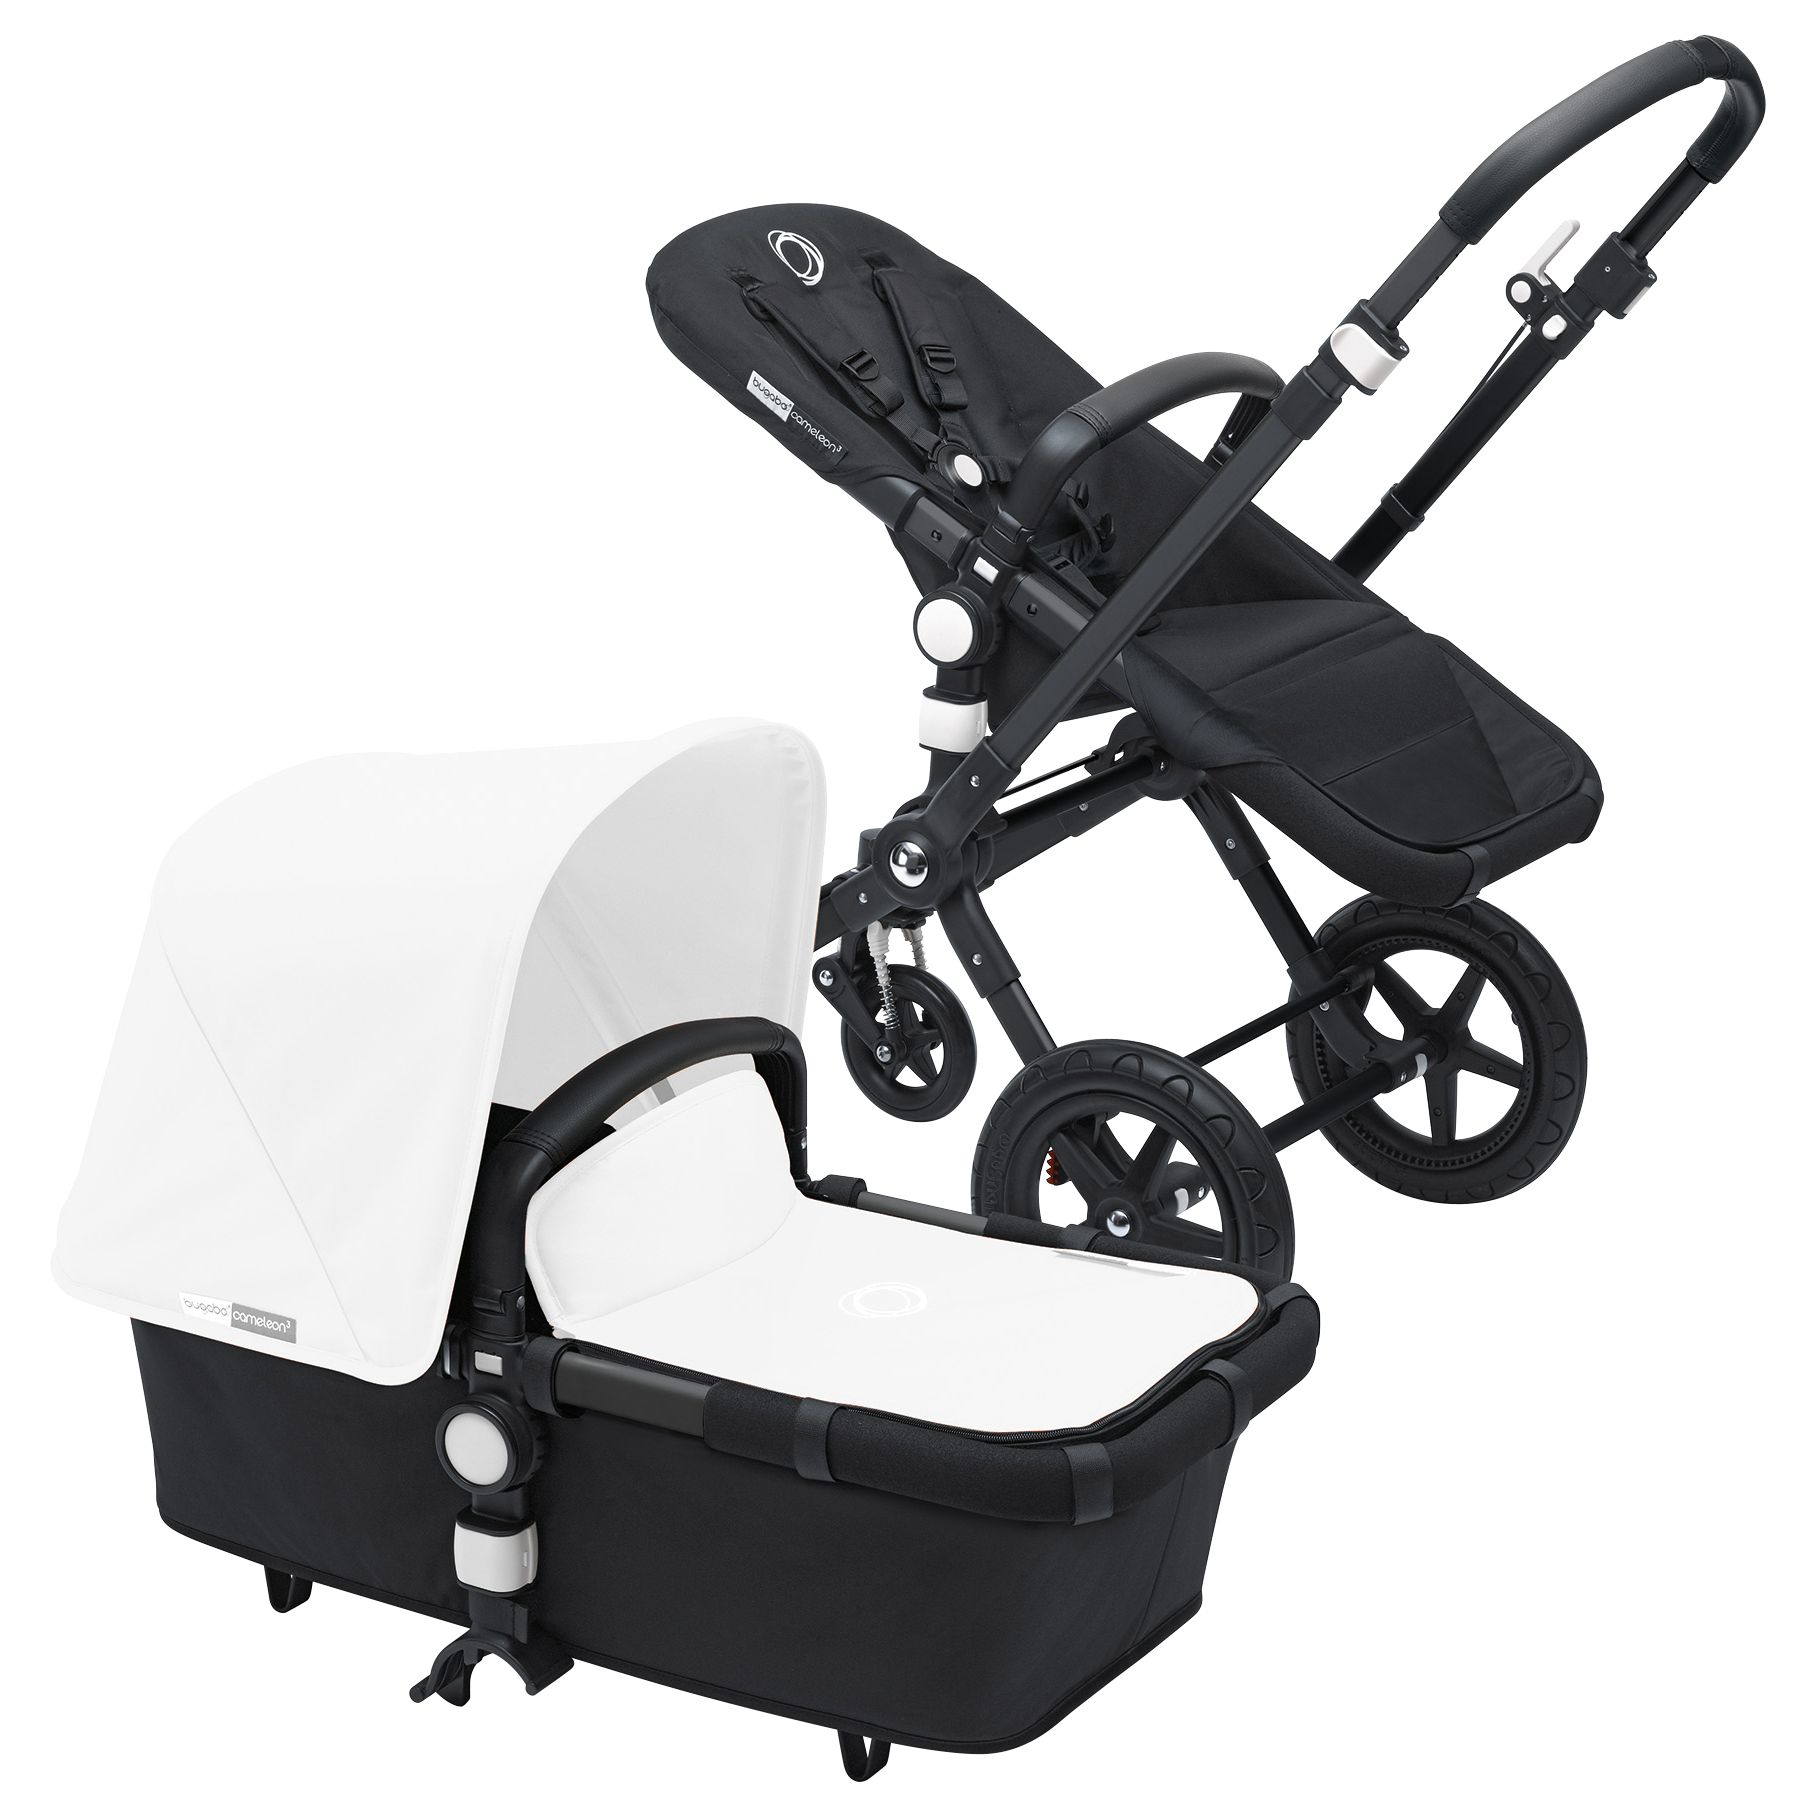 Bugaboo Bugaboo Cameleon3 Pushchair Base Unit and Carrycot 2016, Black/Black